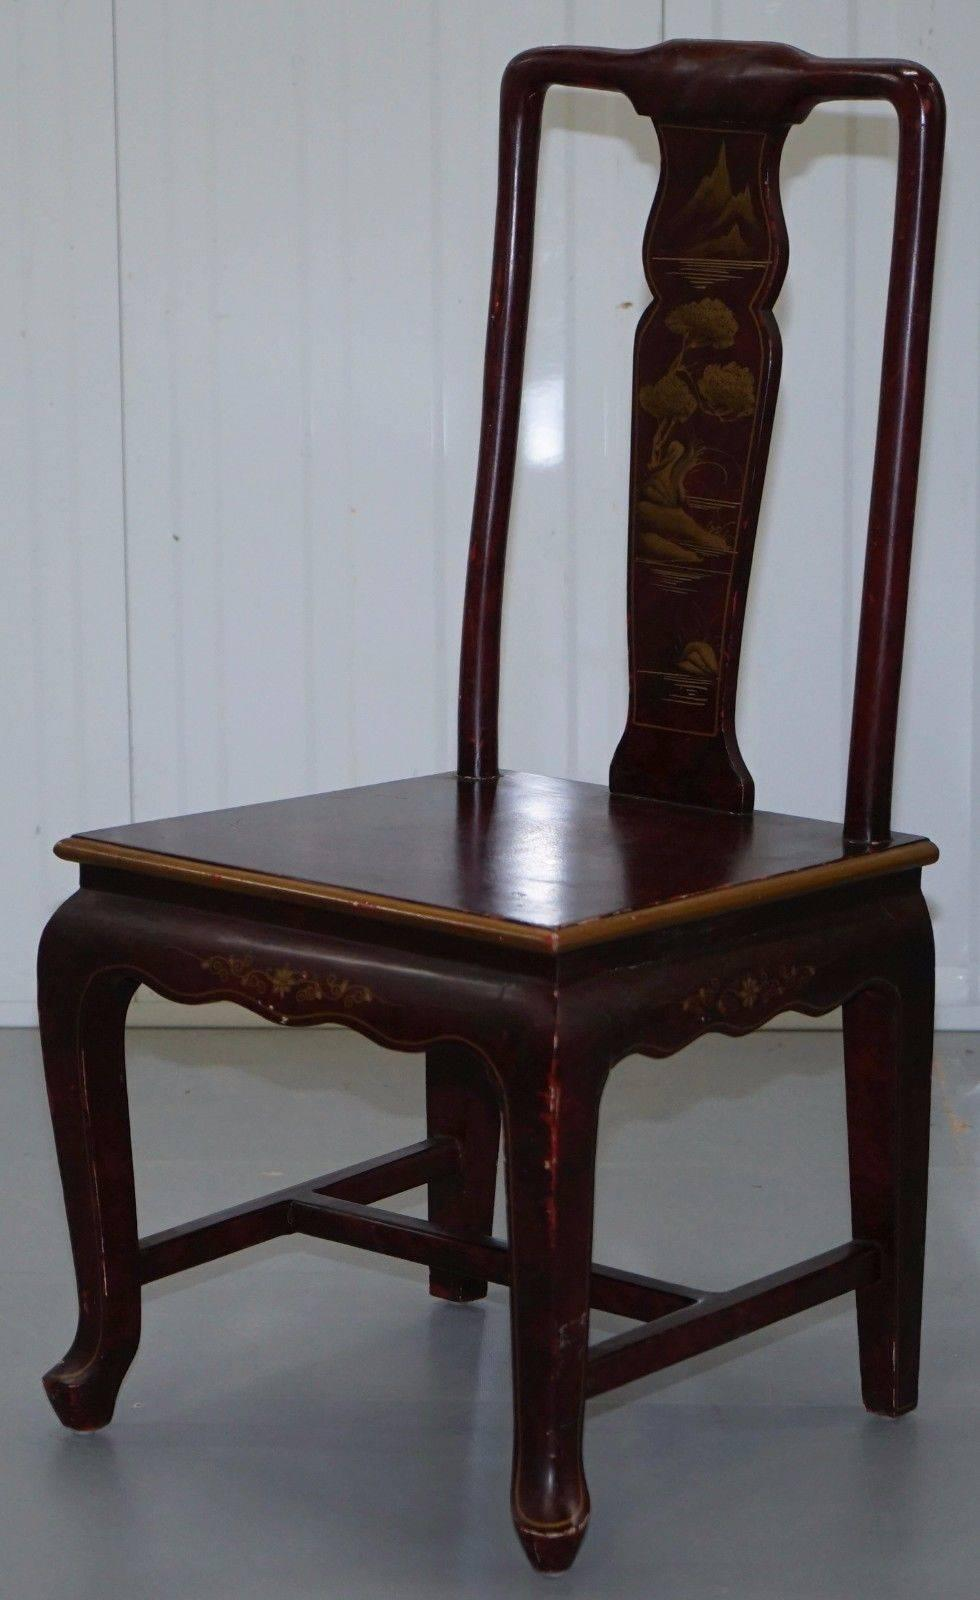 Antique Lacquered Chinese Chair Of Medium Proportions Bonsai Tree Detail For Sale At 1stdibs